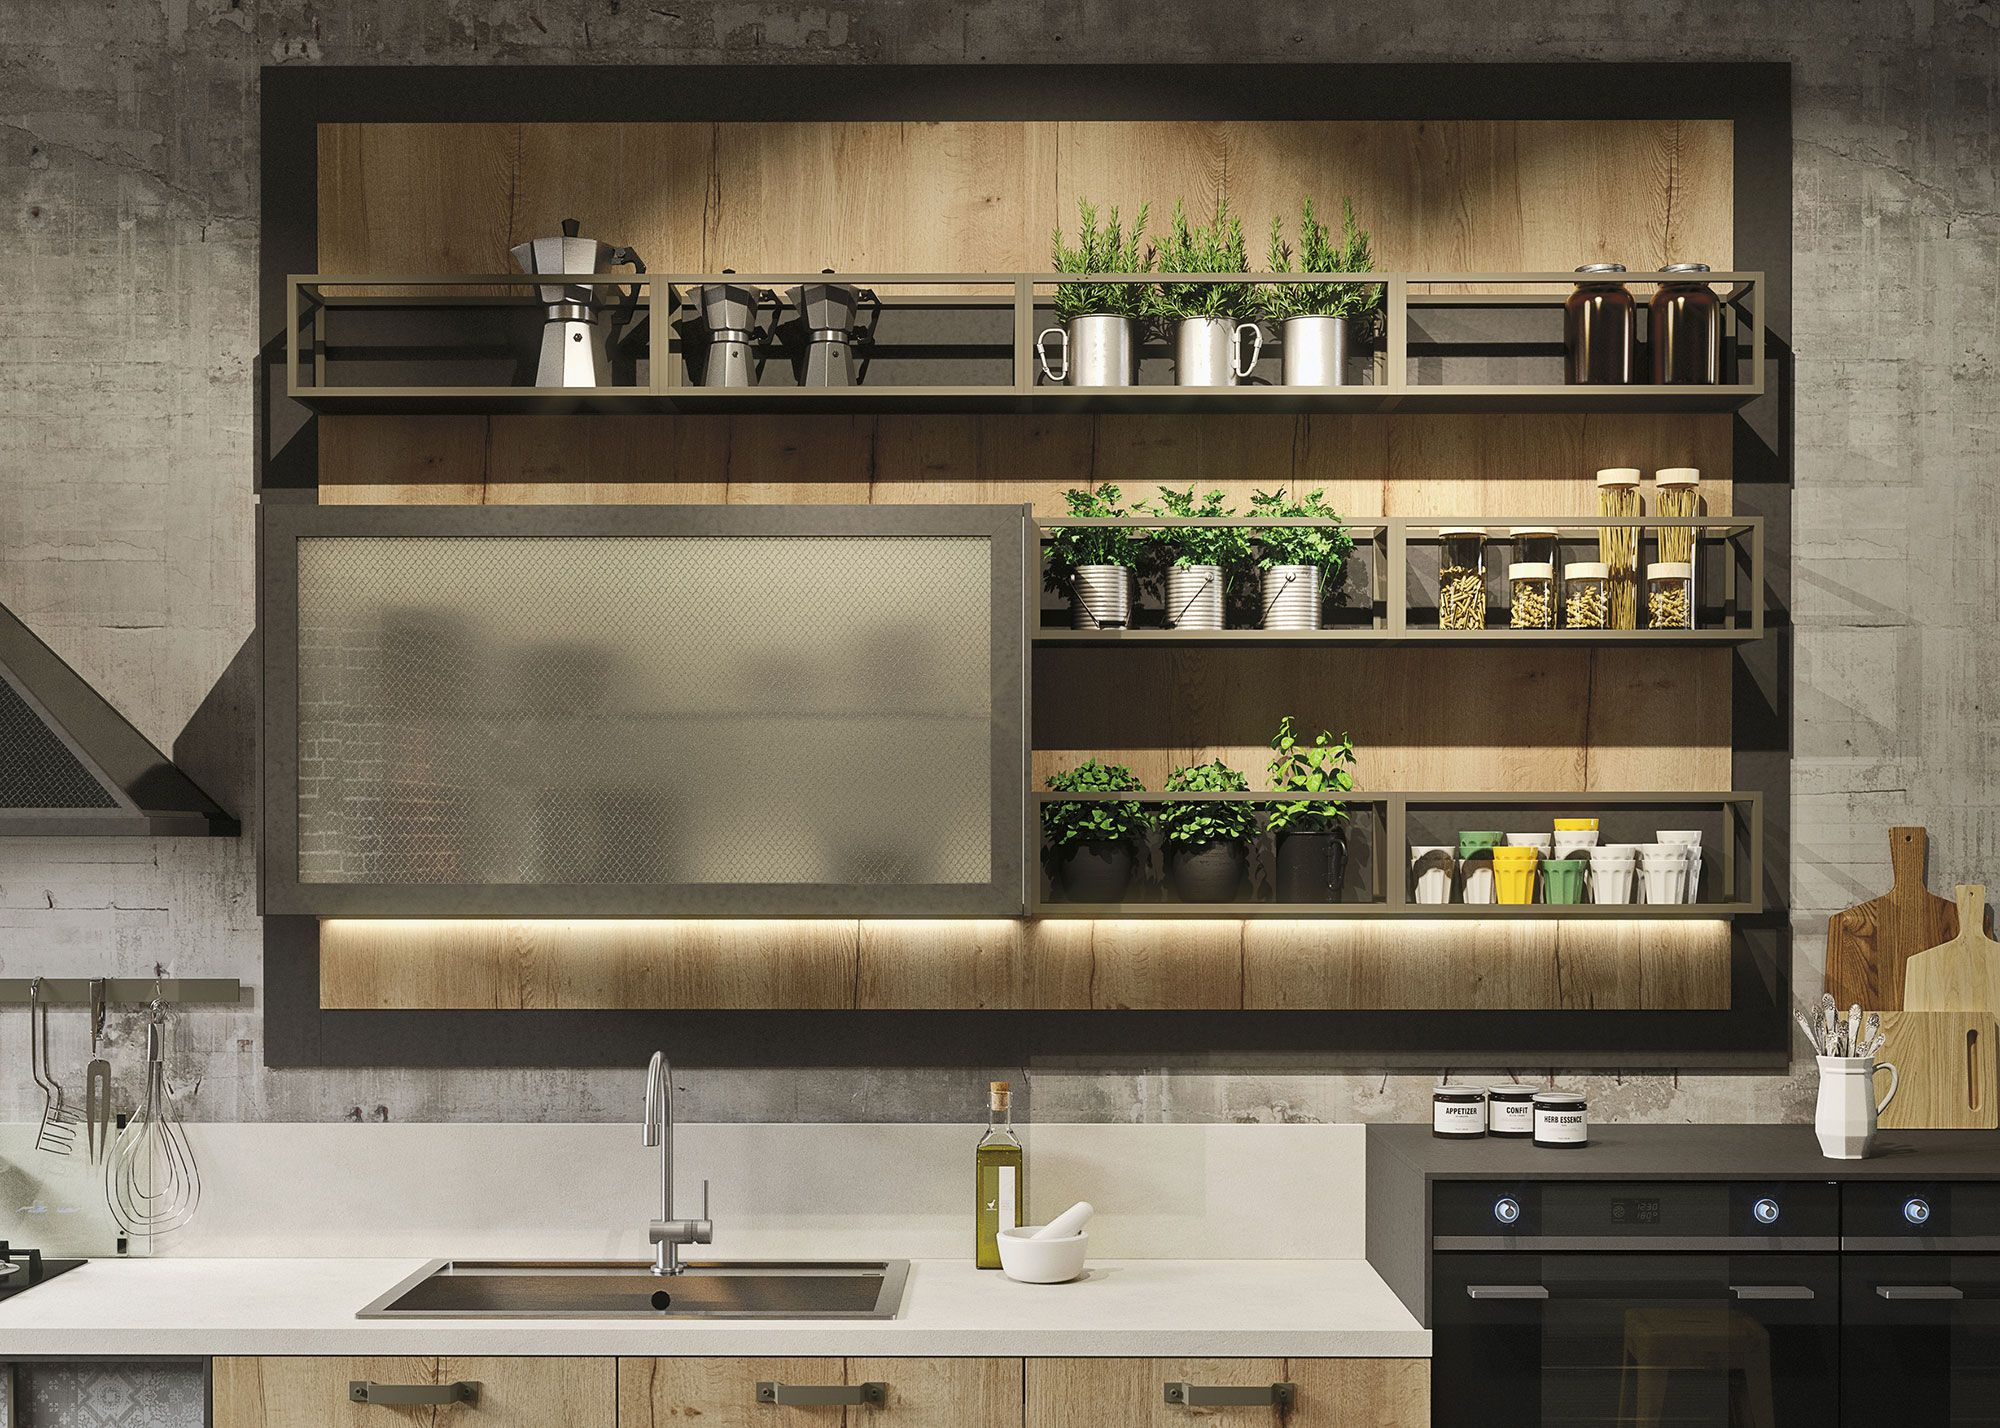 Loft, Cucina and Industrial on Pinterest